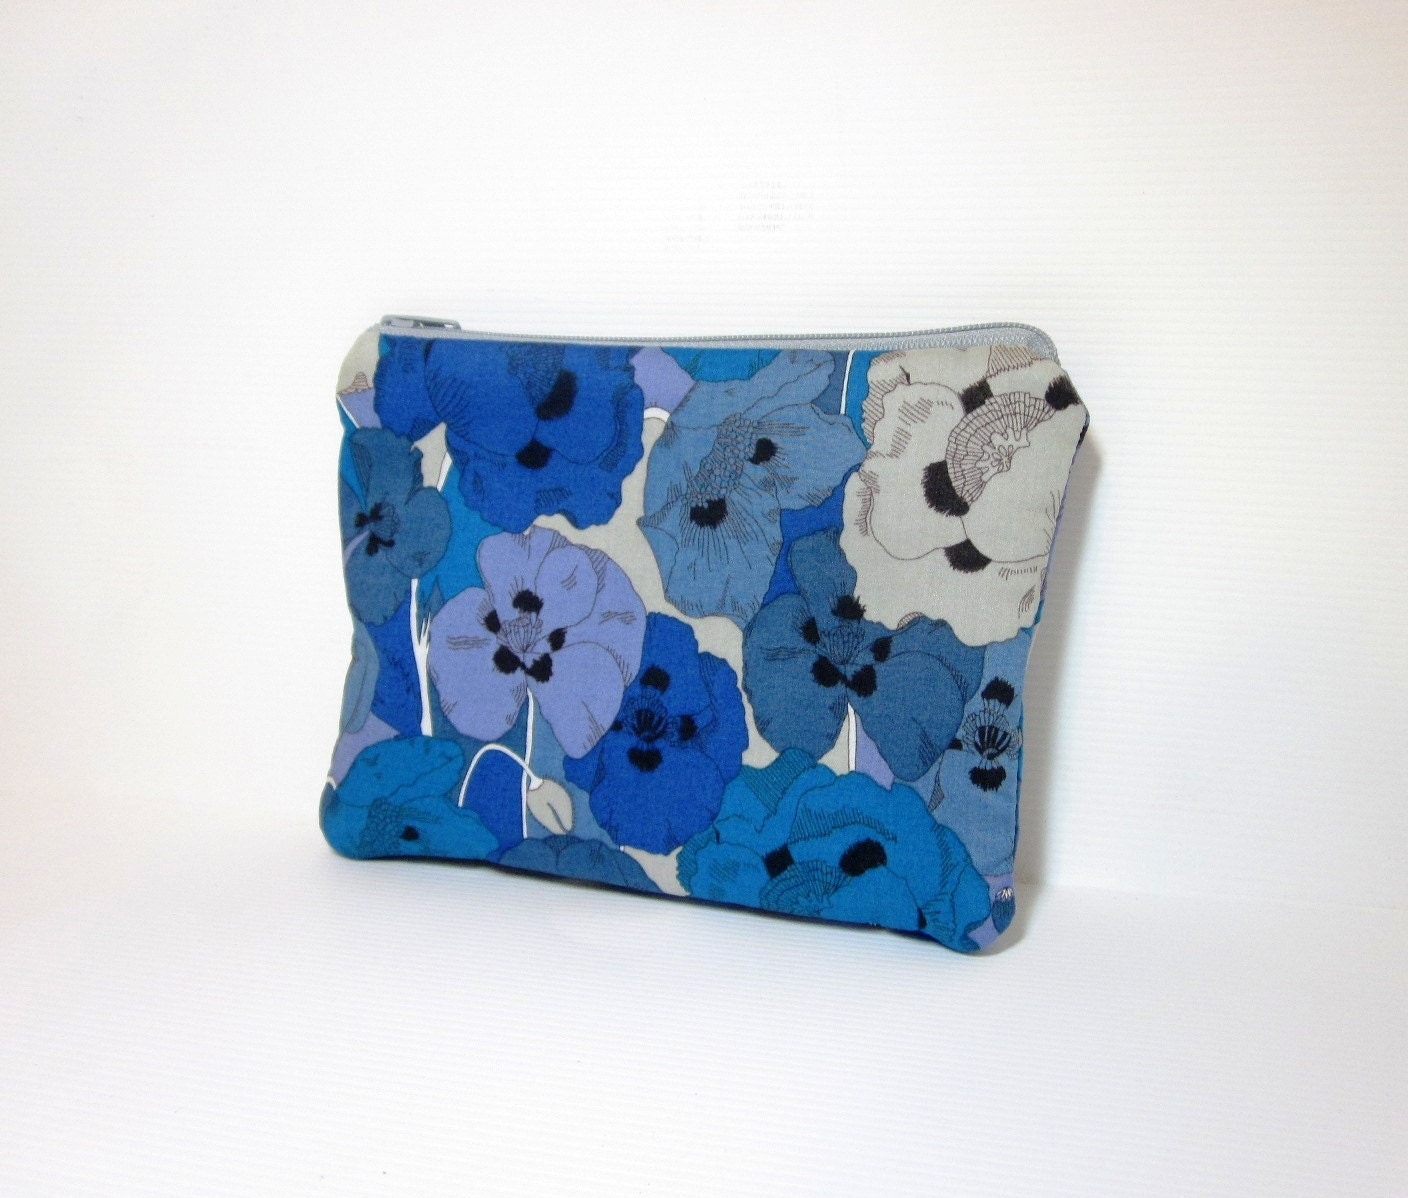 Small Zipper Pouch Small Wallet Small Cosmetic Bag Liberty of London Blue Flowers - handjstarcreations